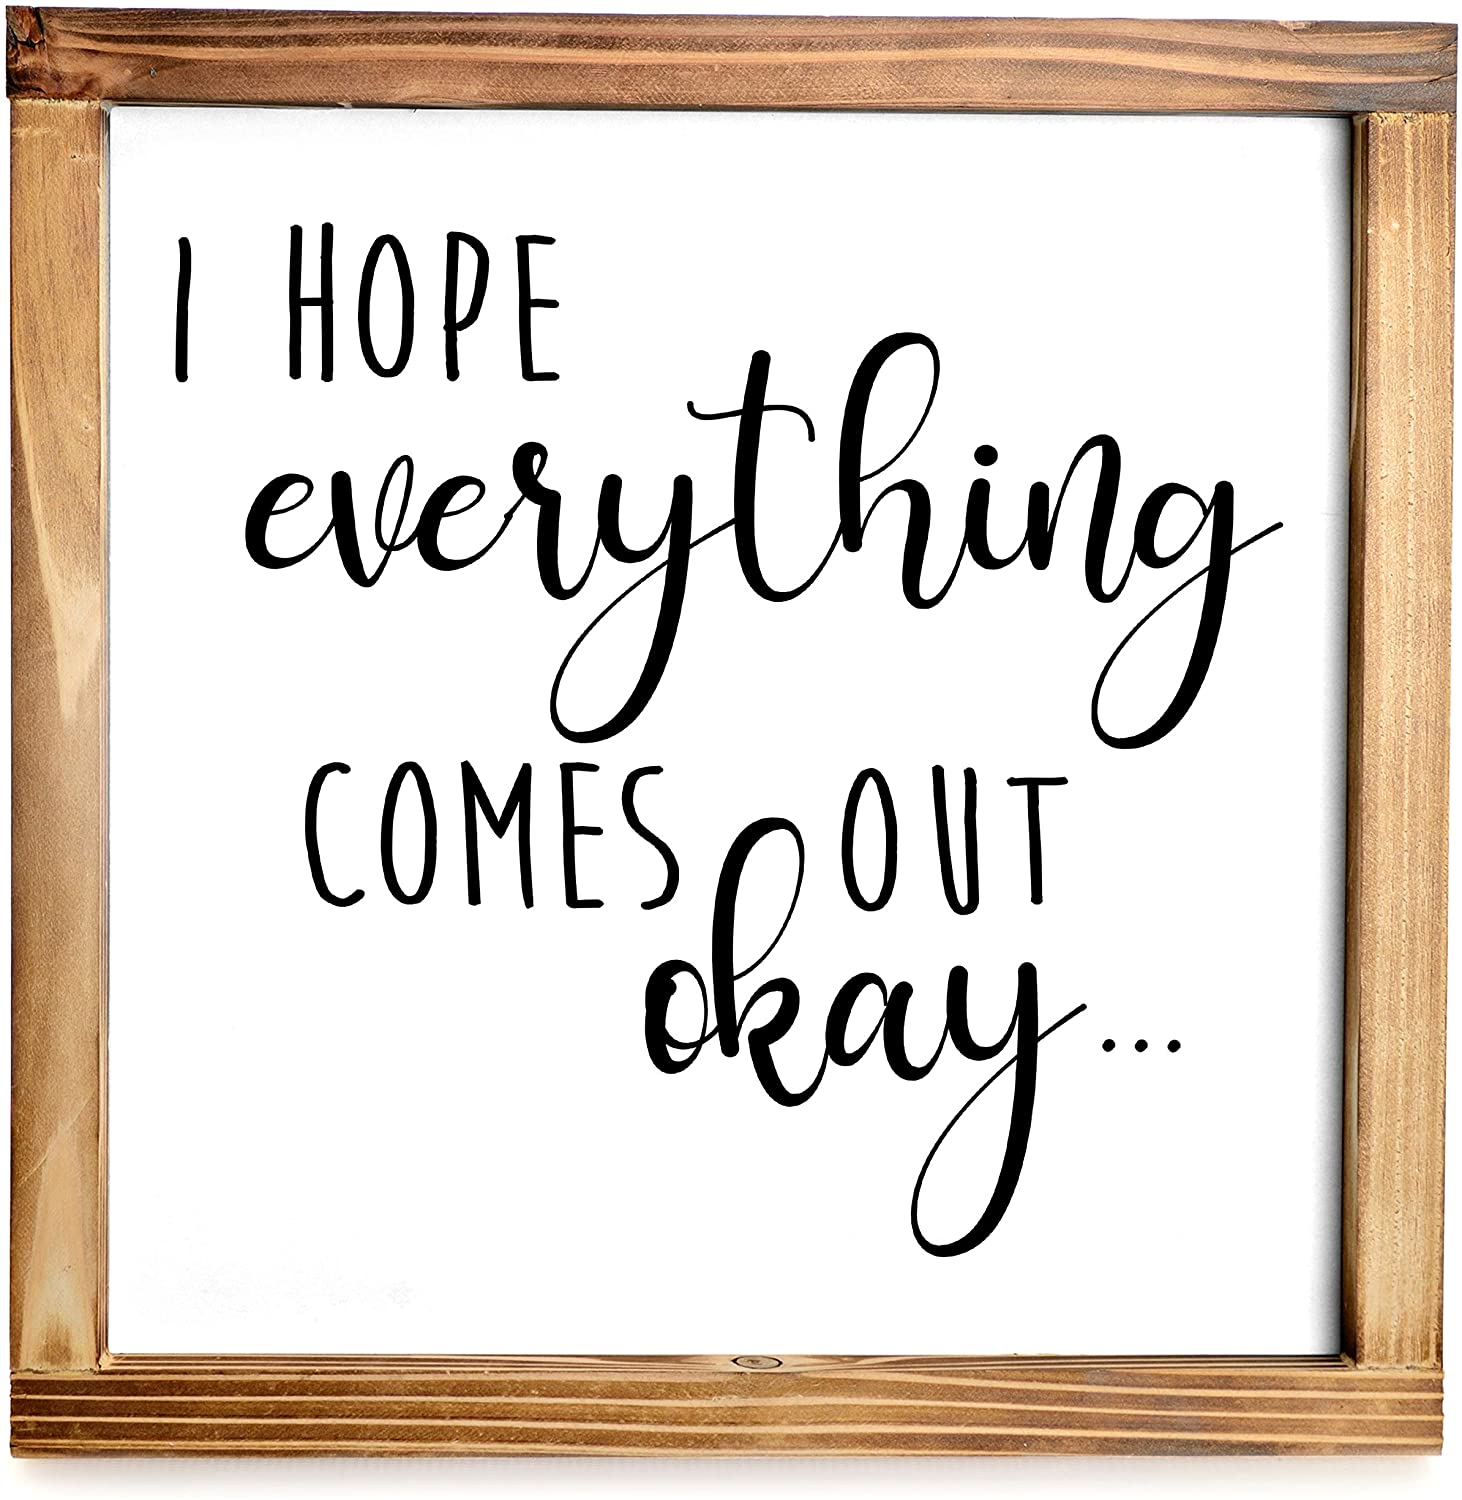 I Hope Everything Comes Out Okay Sign - Funny Modern Farmhouse Decor Sign, Cute Guest Bathroom Decor Wall Art, Rustic Home Decor, Restroom Sign for Bathroom Wall with Funny Quotes 12x12 Inch